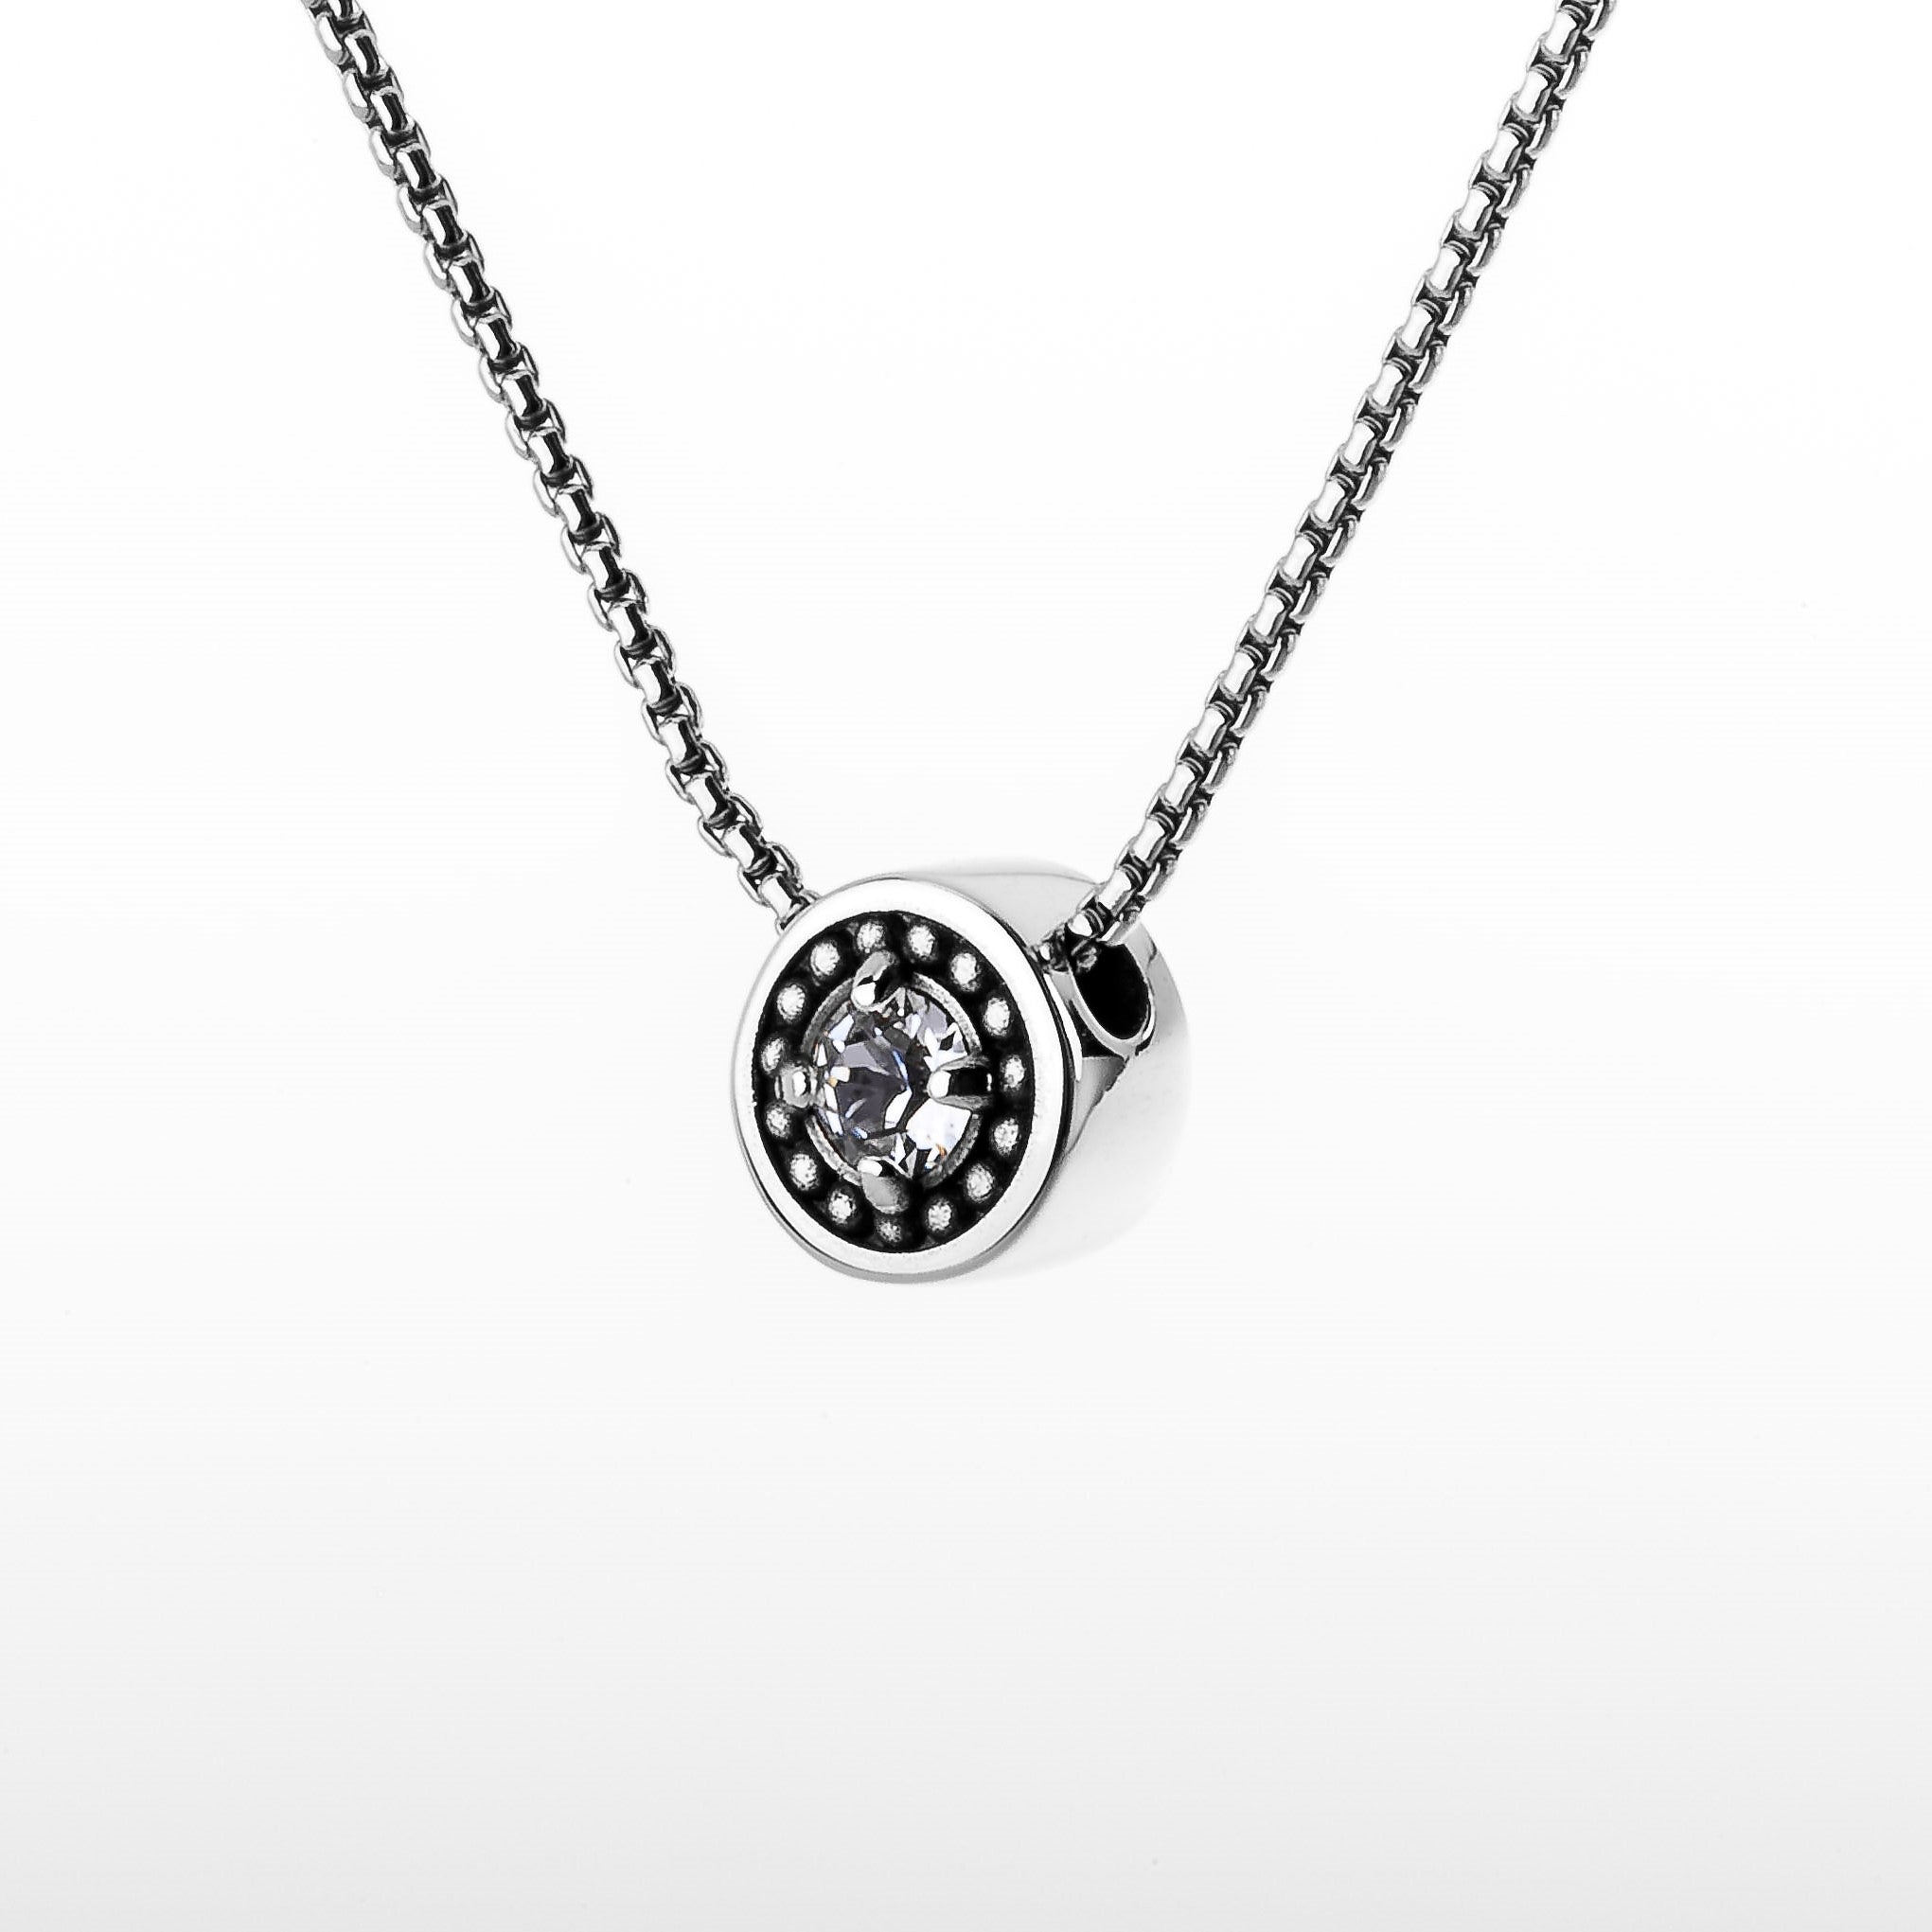 "April Diamond Birthstone Necklace - The Generations ""Petite"""